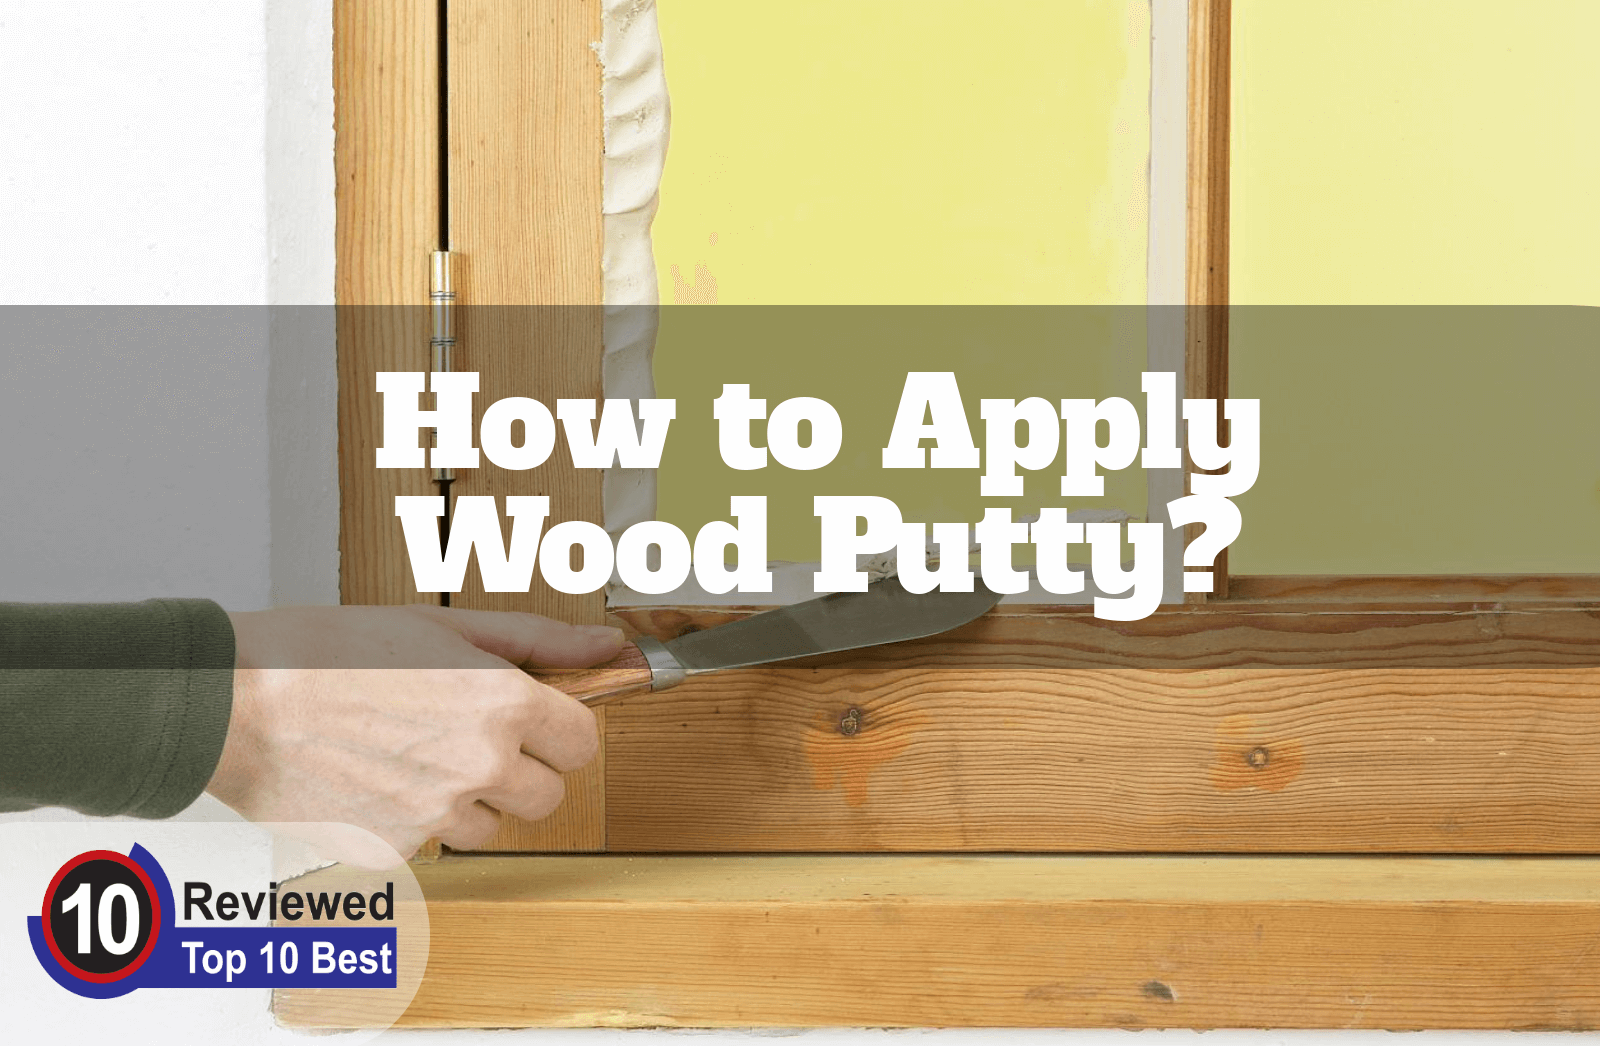 How long does wood putty take to dry